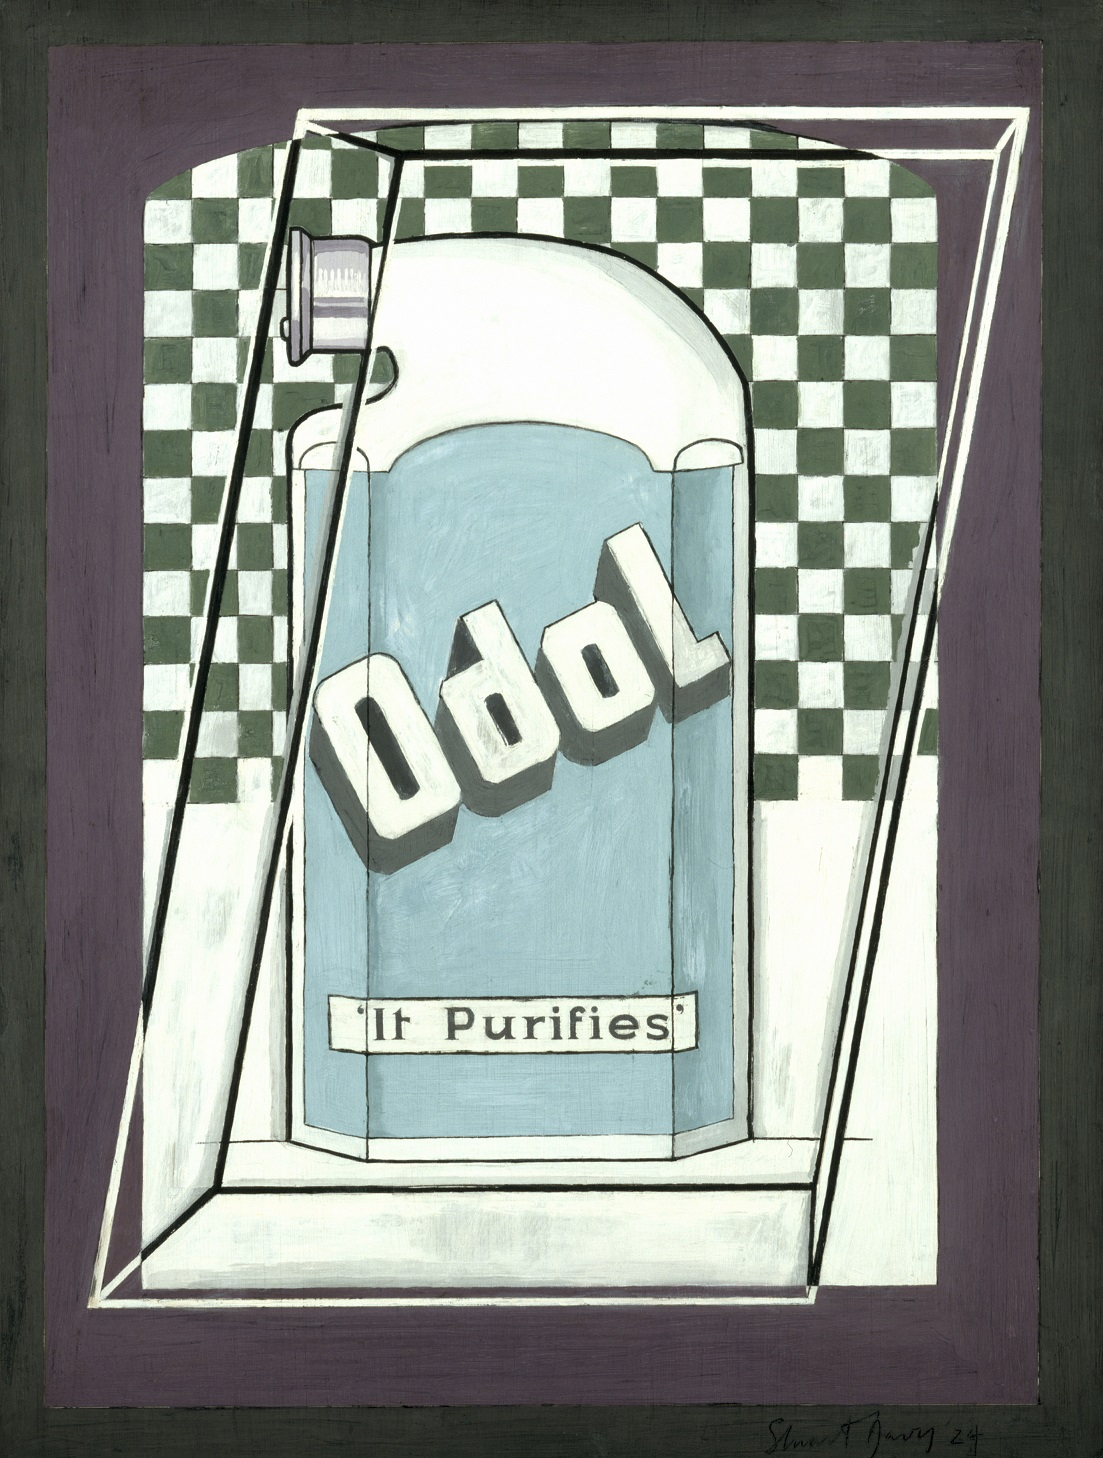 Odol (c) The estate of Stuart Davis -DACS, London - VAGA, New York 2017